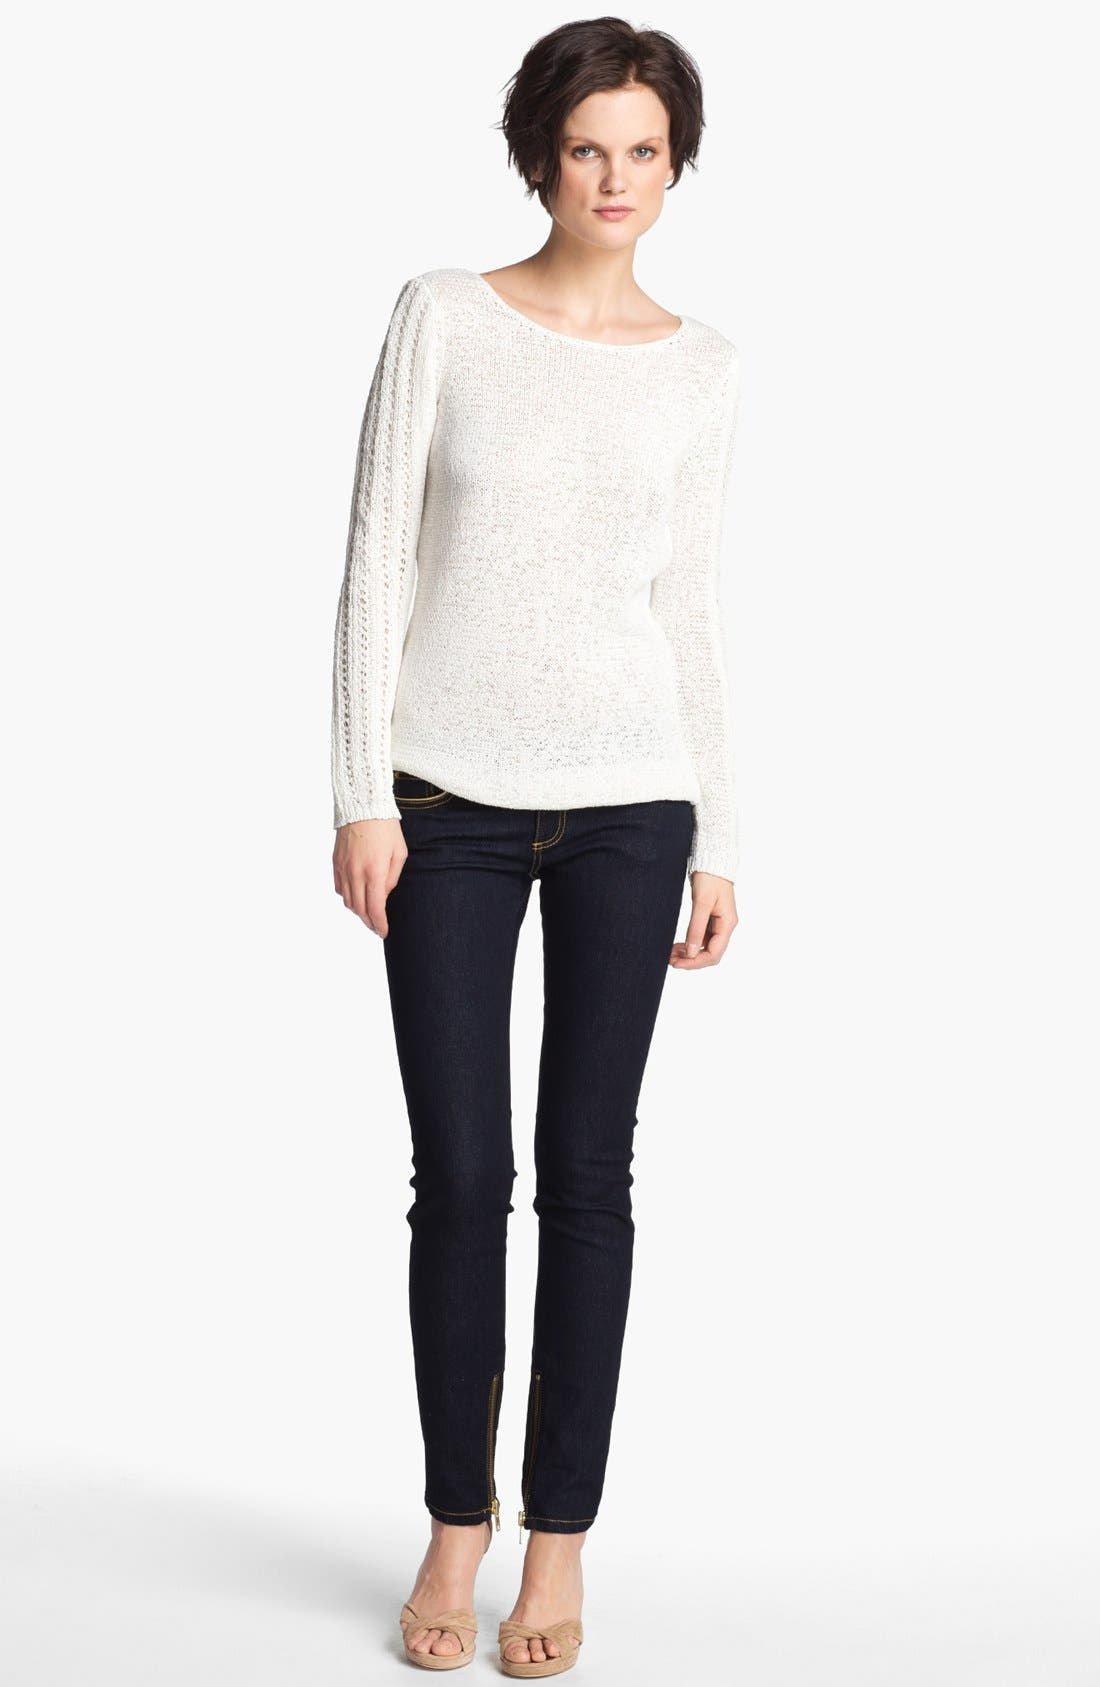 Main Image - Rachel Zoe 'Karla' Open Stitch Tunic Sweater